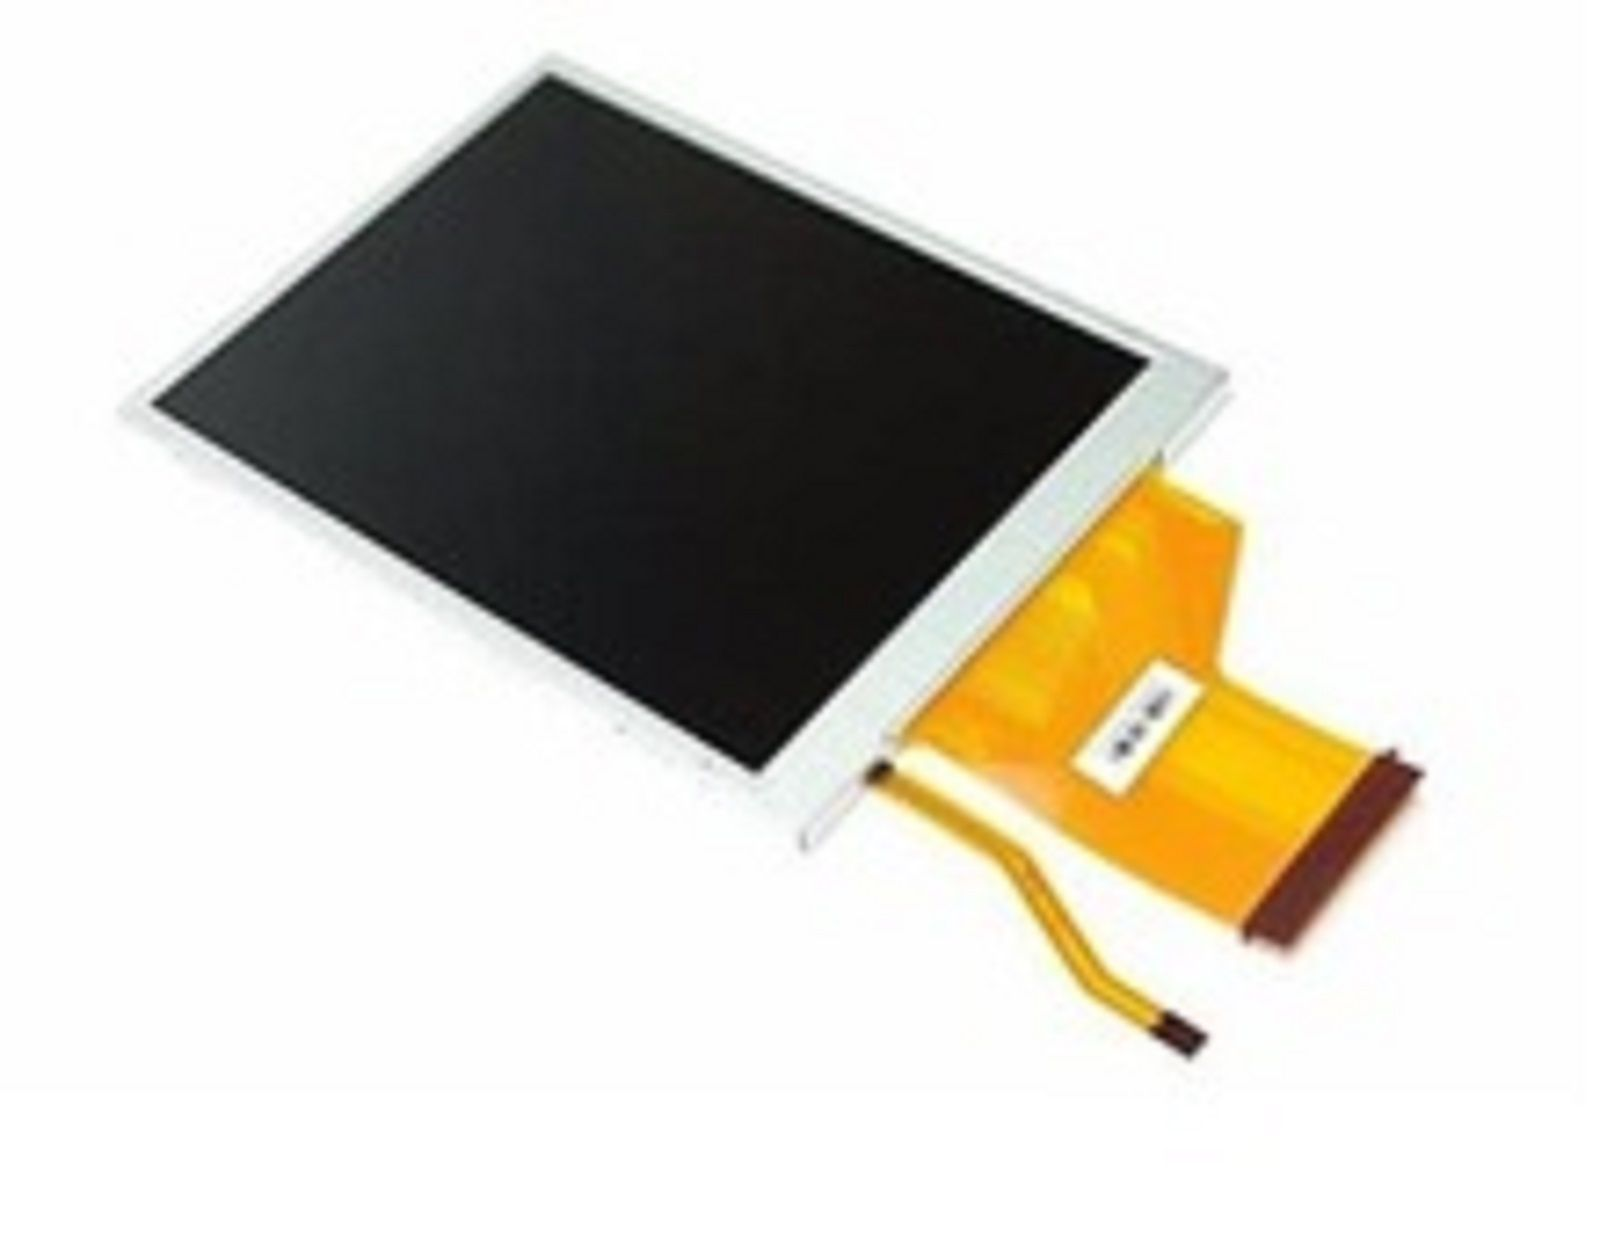 Display Lcd para Nikon Coolpix S8200